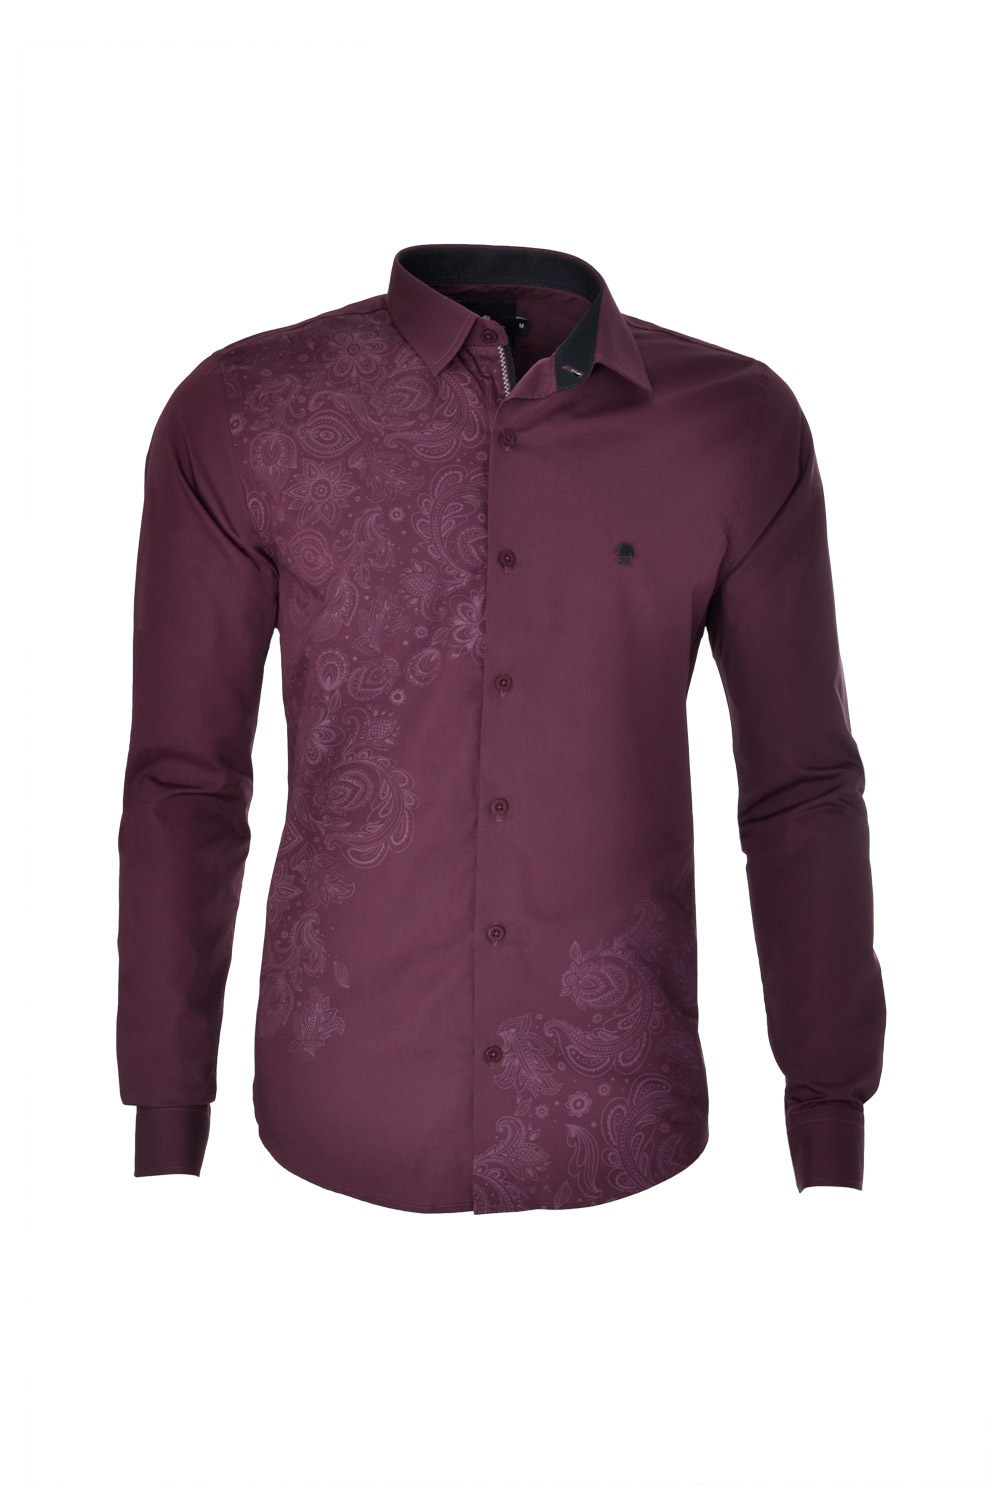 CAMISA ML FASHION SUPER SLIM ALGODAO FIO TINTO ESTAMPA VINHO